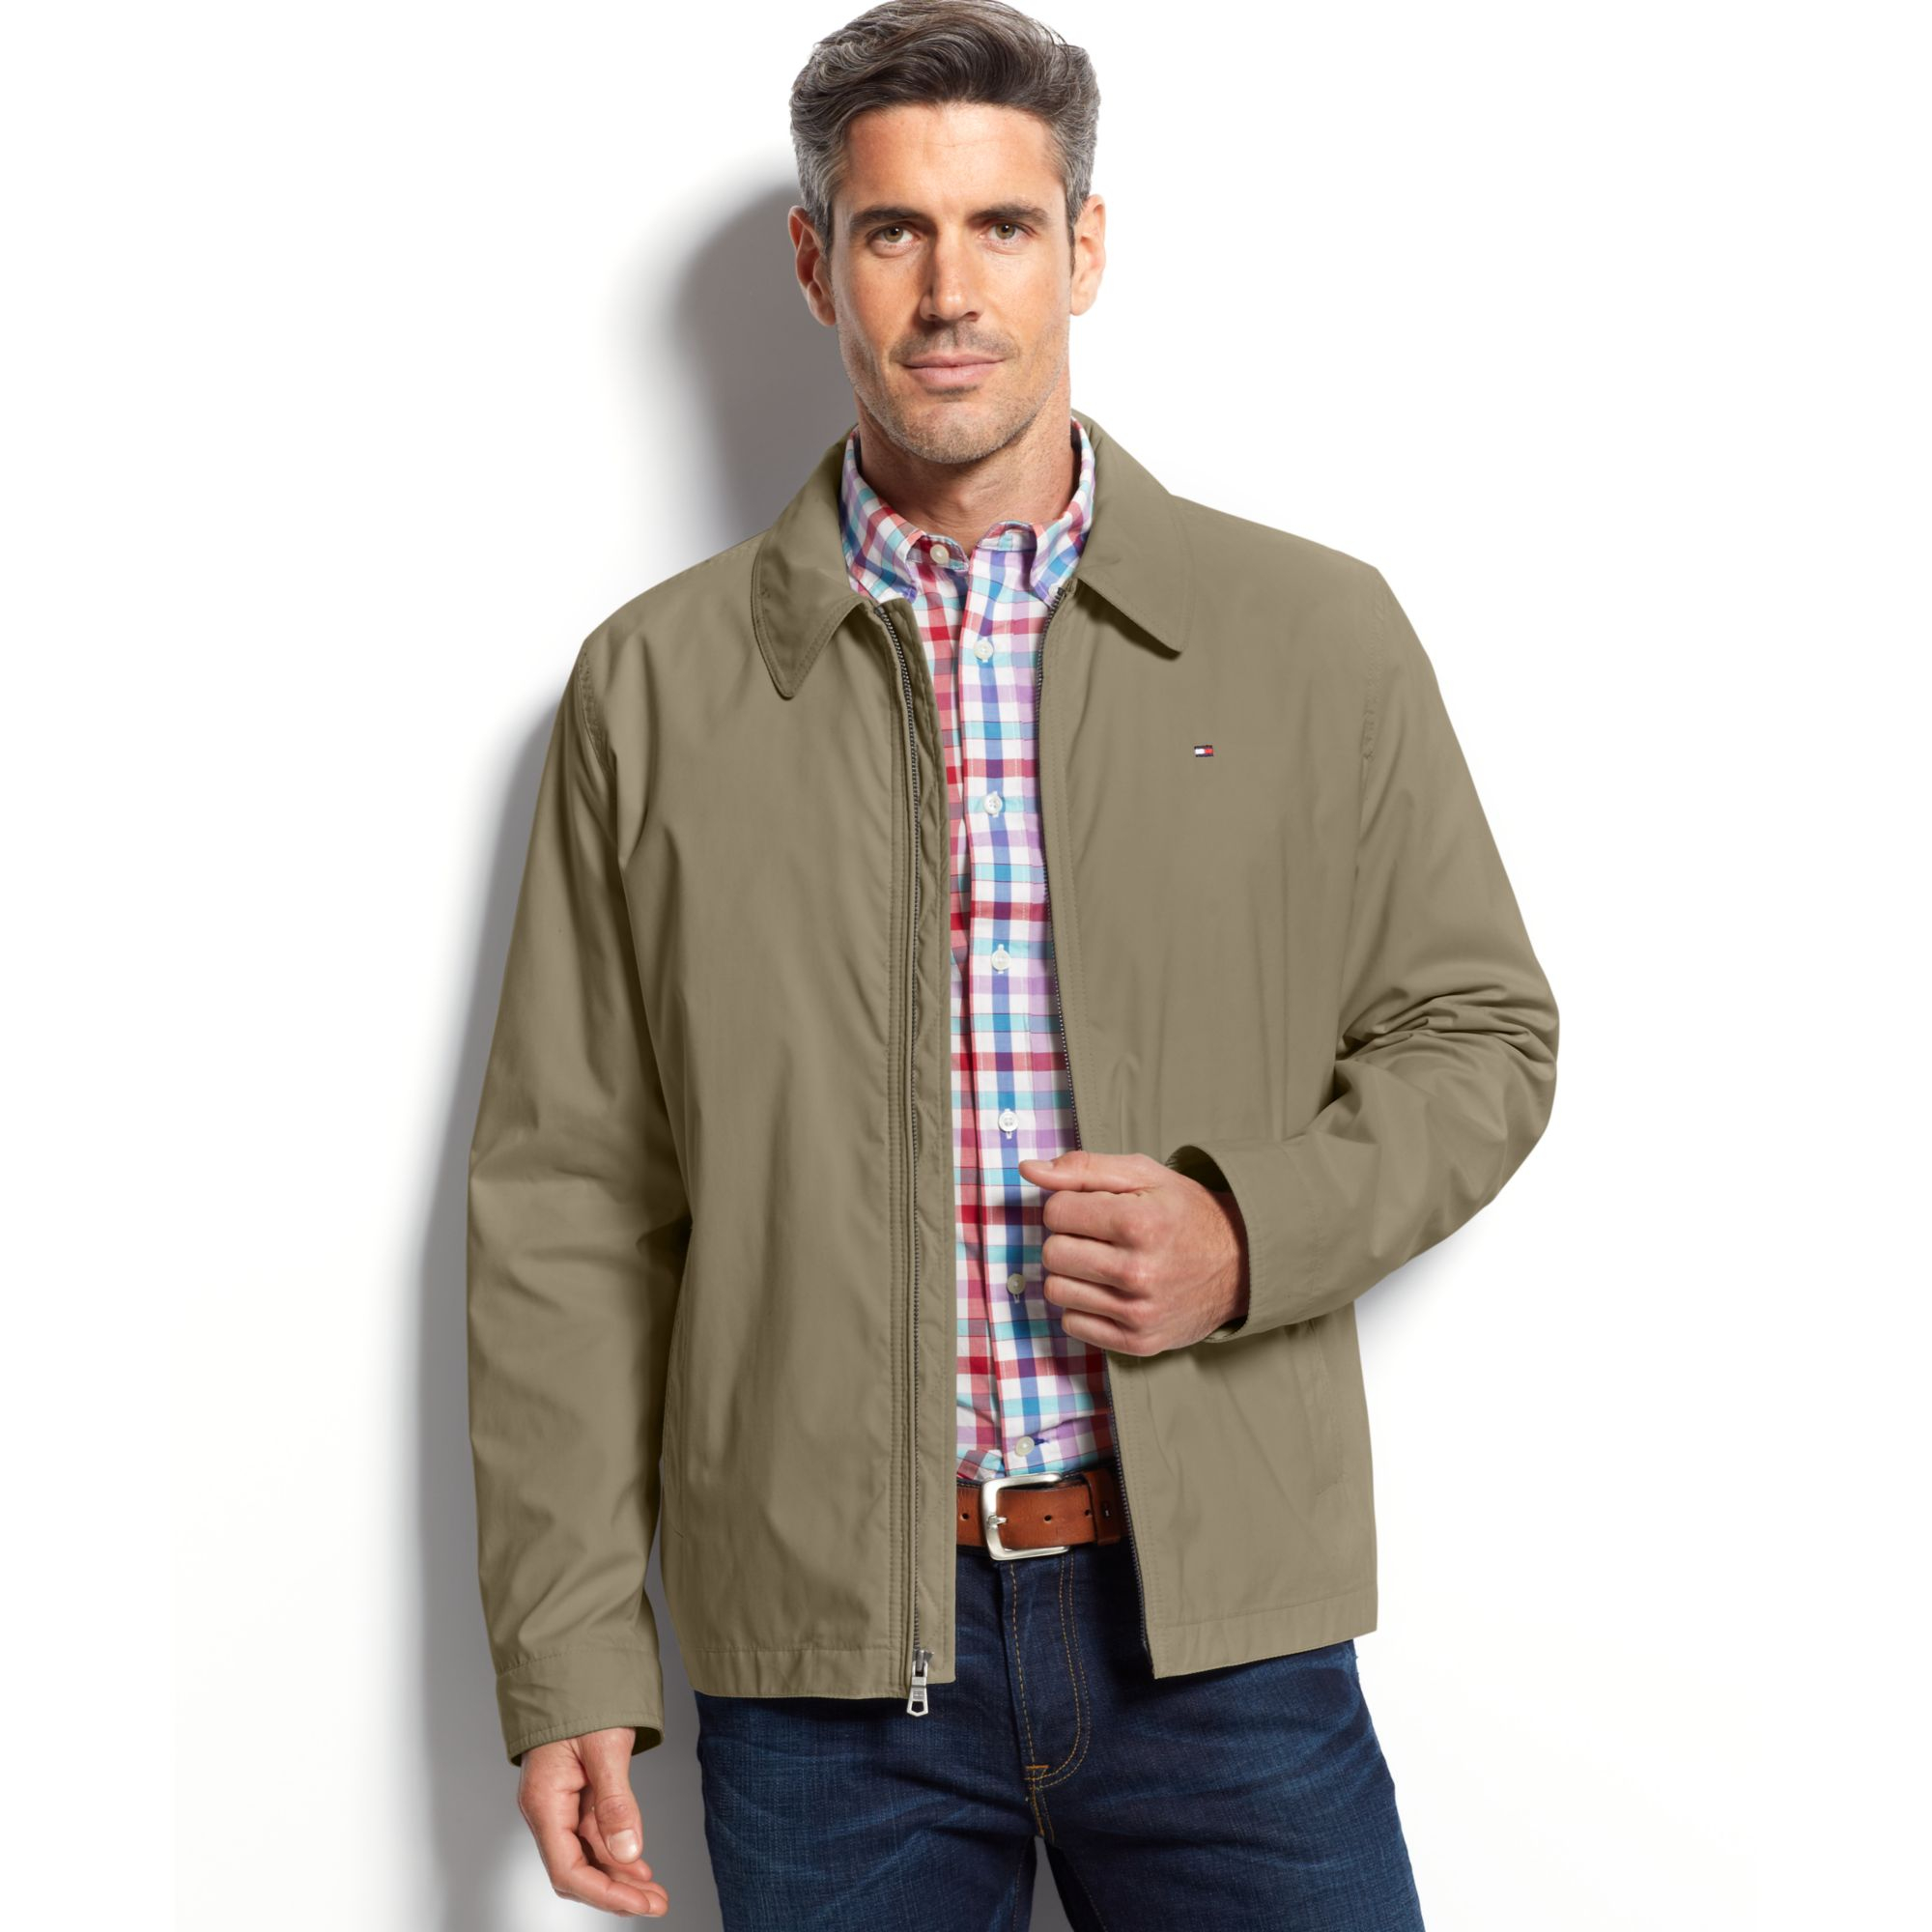 c30923cc22a Tommy Hilfiger Microtwill Jacket - Equata.Org The Best Jacket 2018